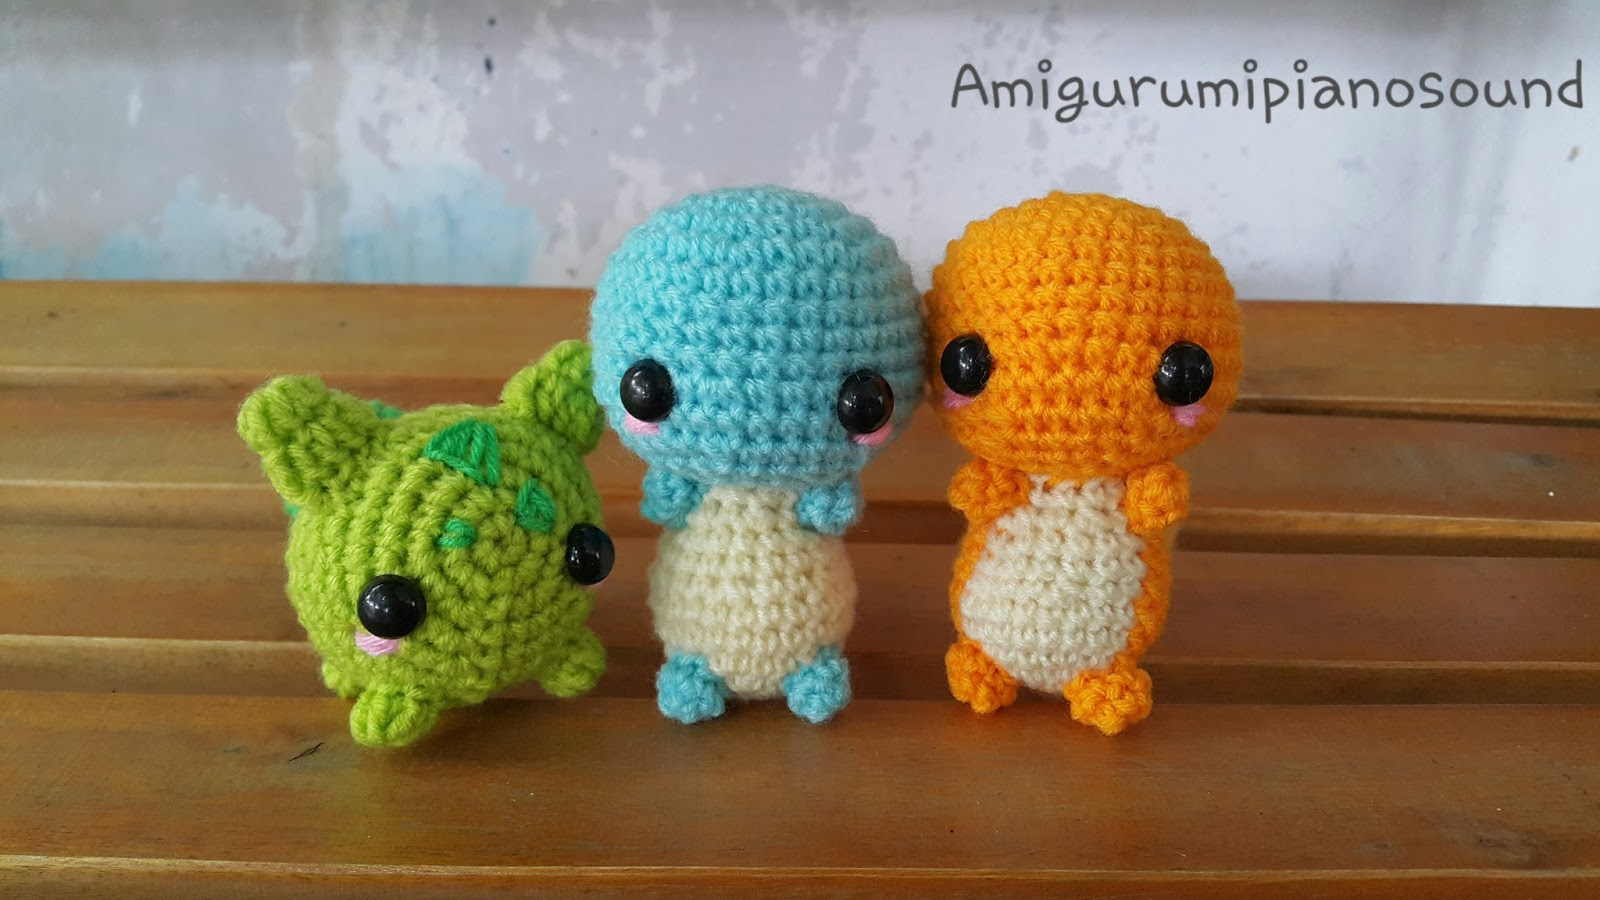 Amigurumi Pokemon Patterns Free : Amigurumipianosound crochet charmander hitokage pokemon